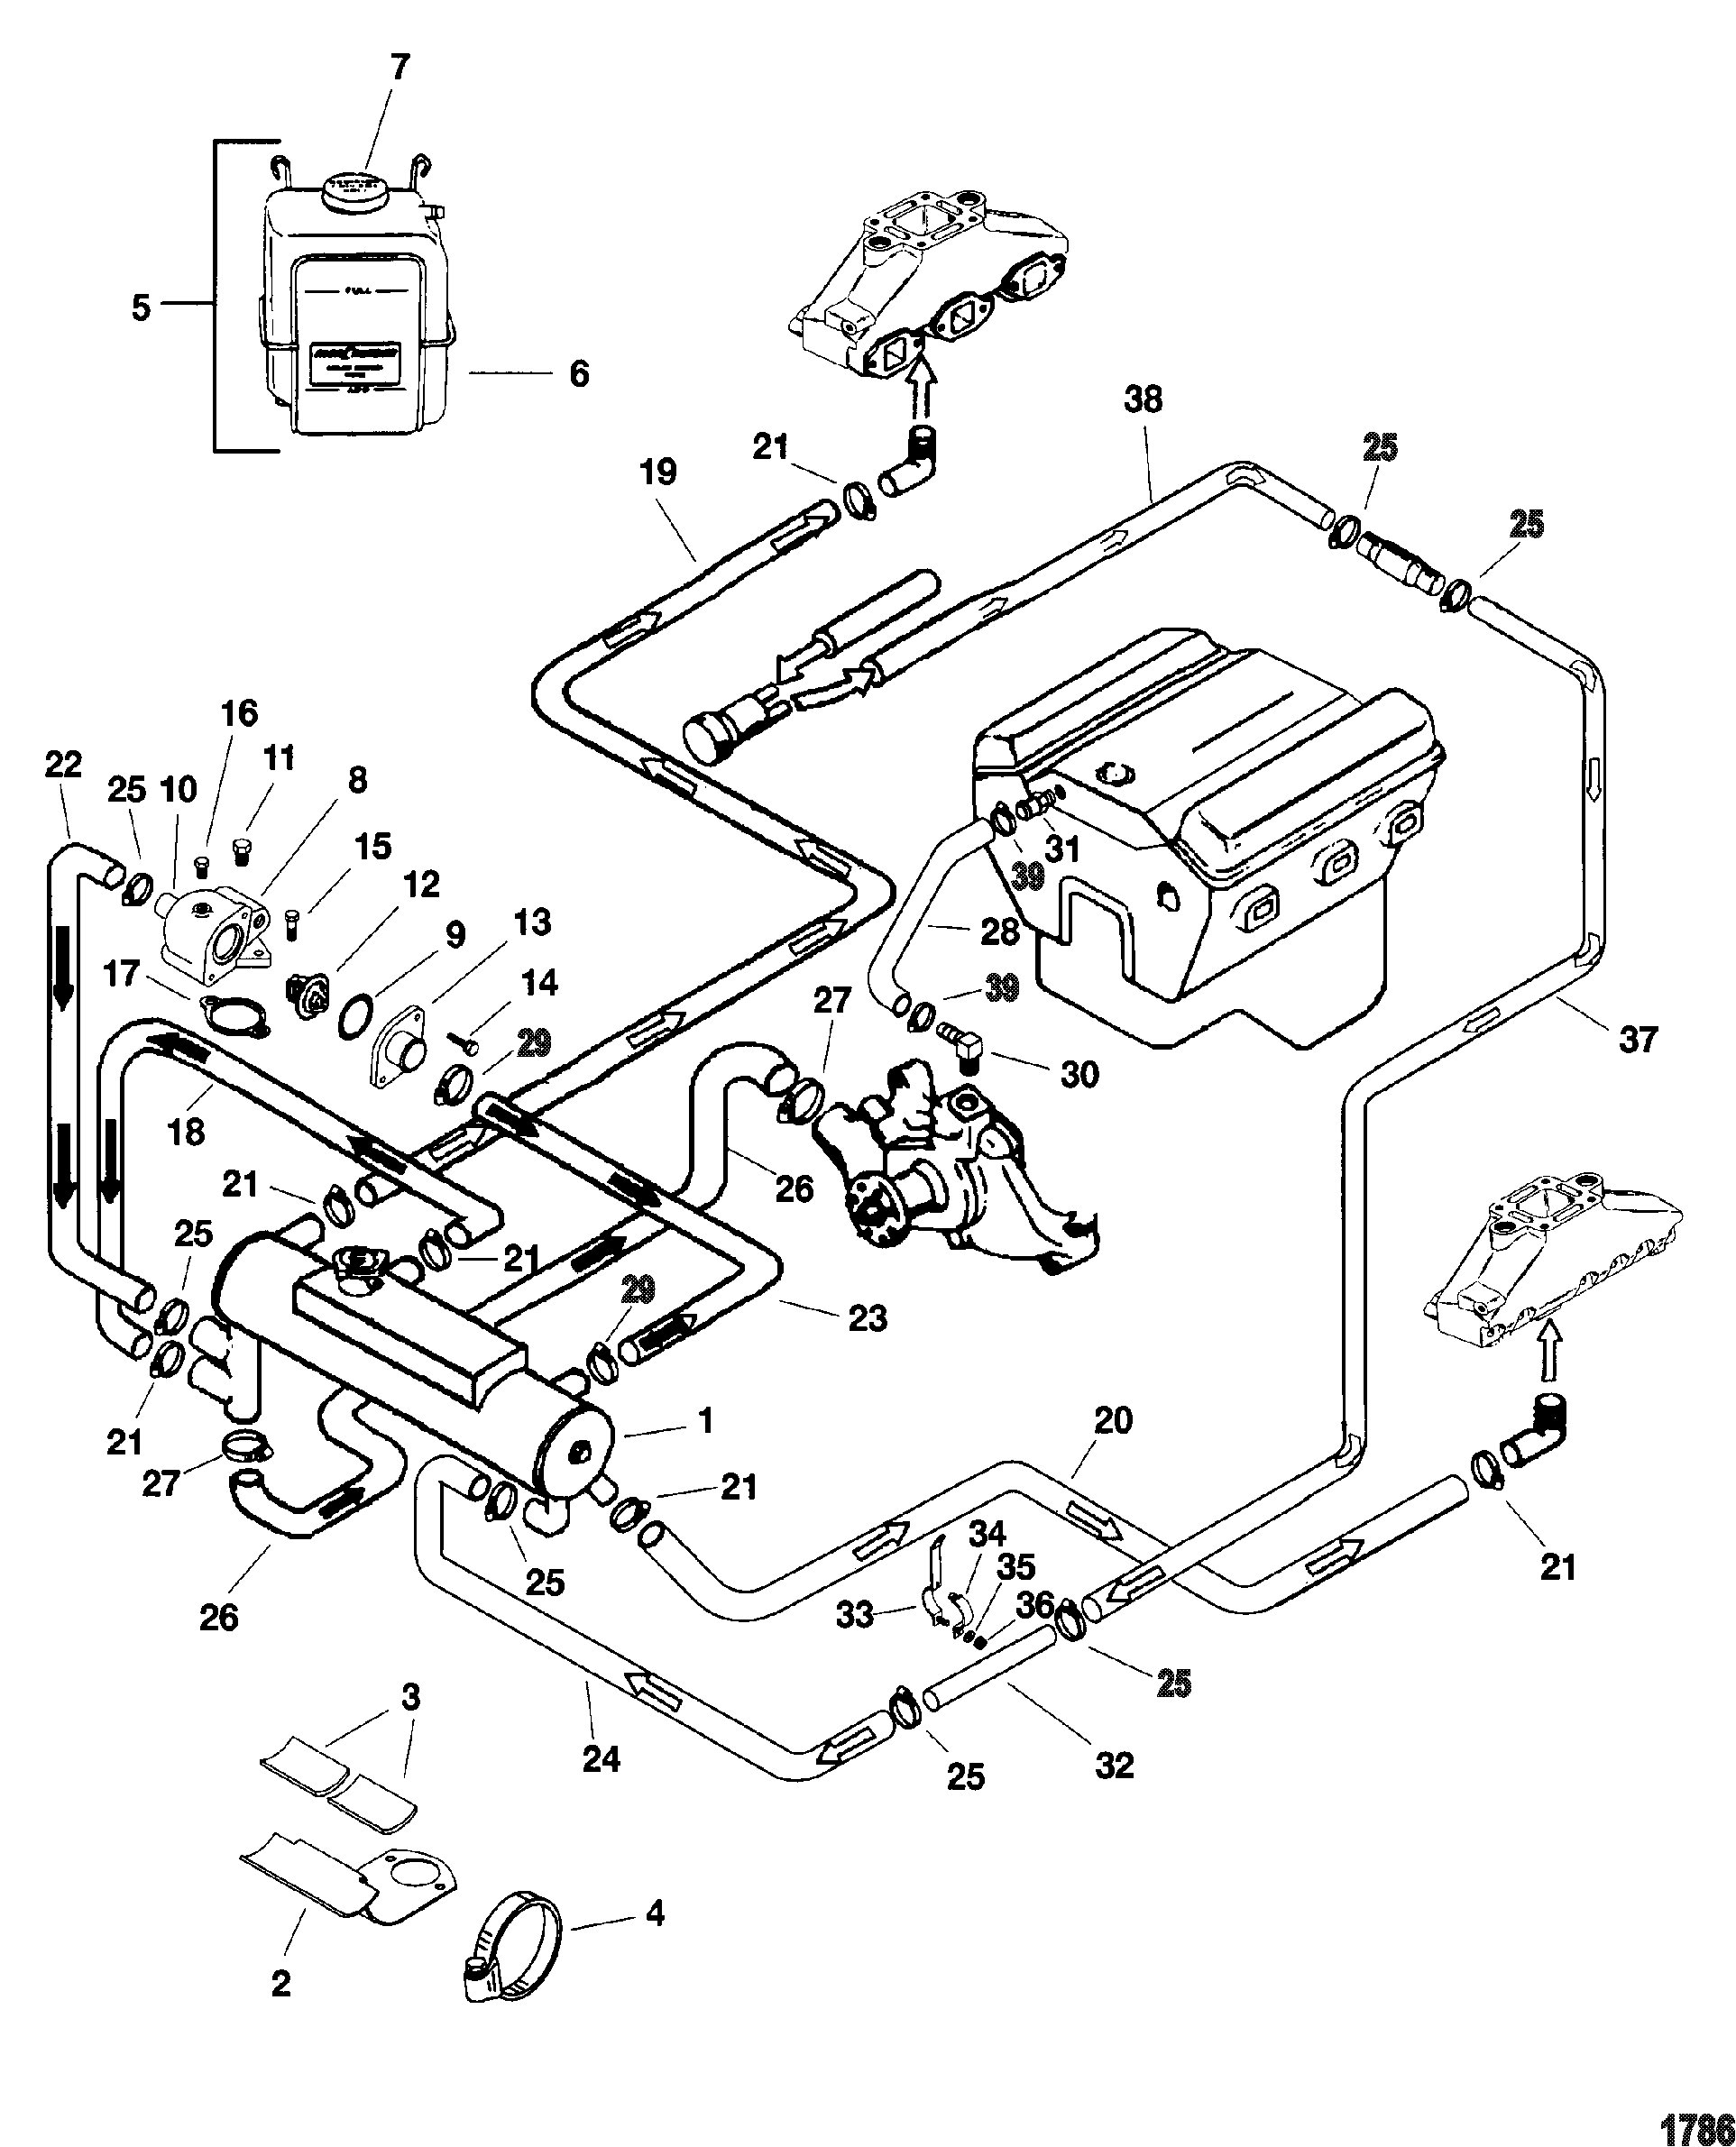 P 0900c15280217ff1 as well 1sem1 Belt Diagram Pontiac Grand Prix 2006 together with Honeywell S Plan Wiring Diagram also Abs Brake Line Routing 303385 besides PS6n 18597. on 2003 pontiac grand am